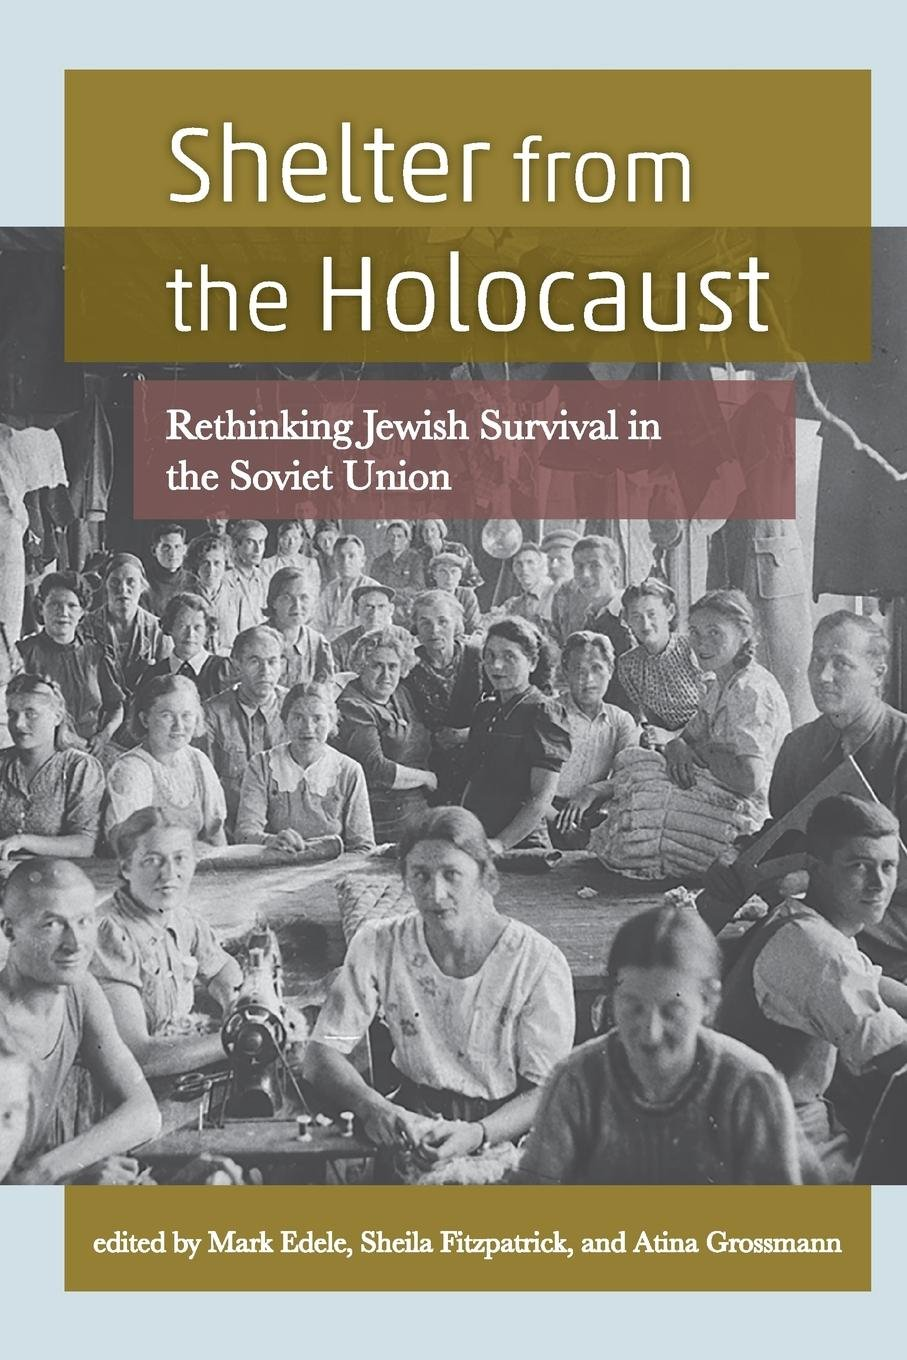 Download Shelter from the Holocaust: Rethinking Jewish Survival in the Soviet Union pdf